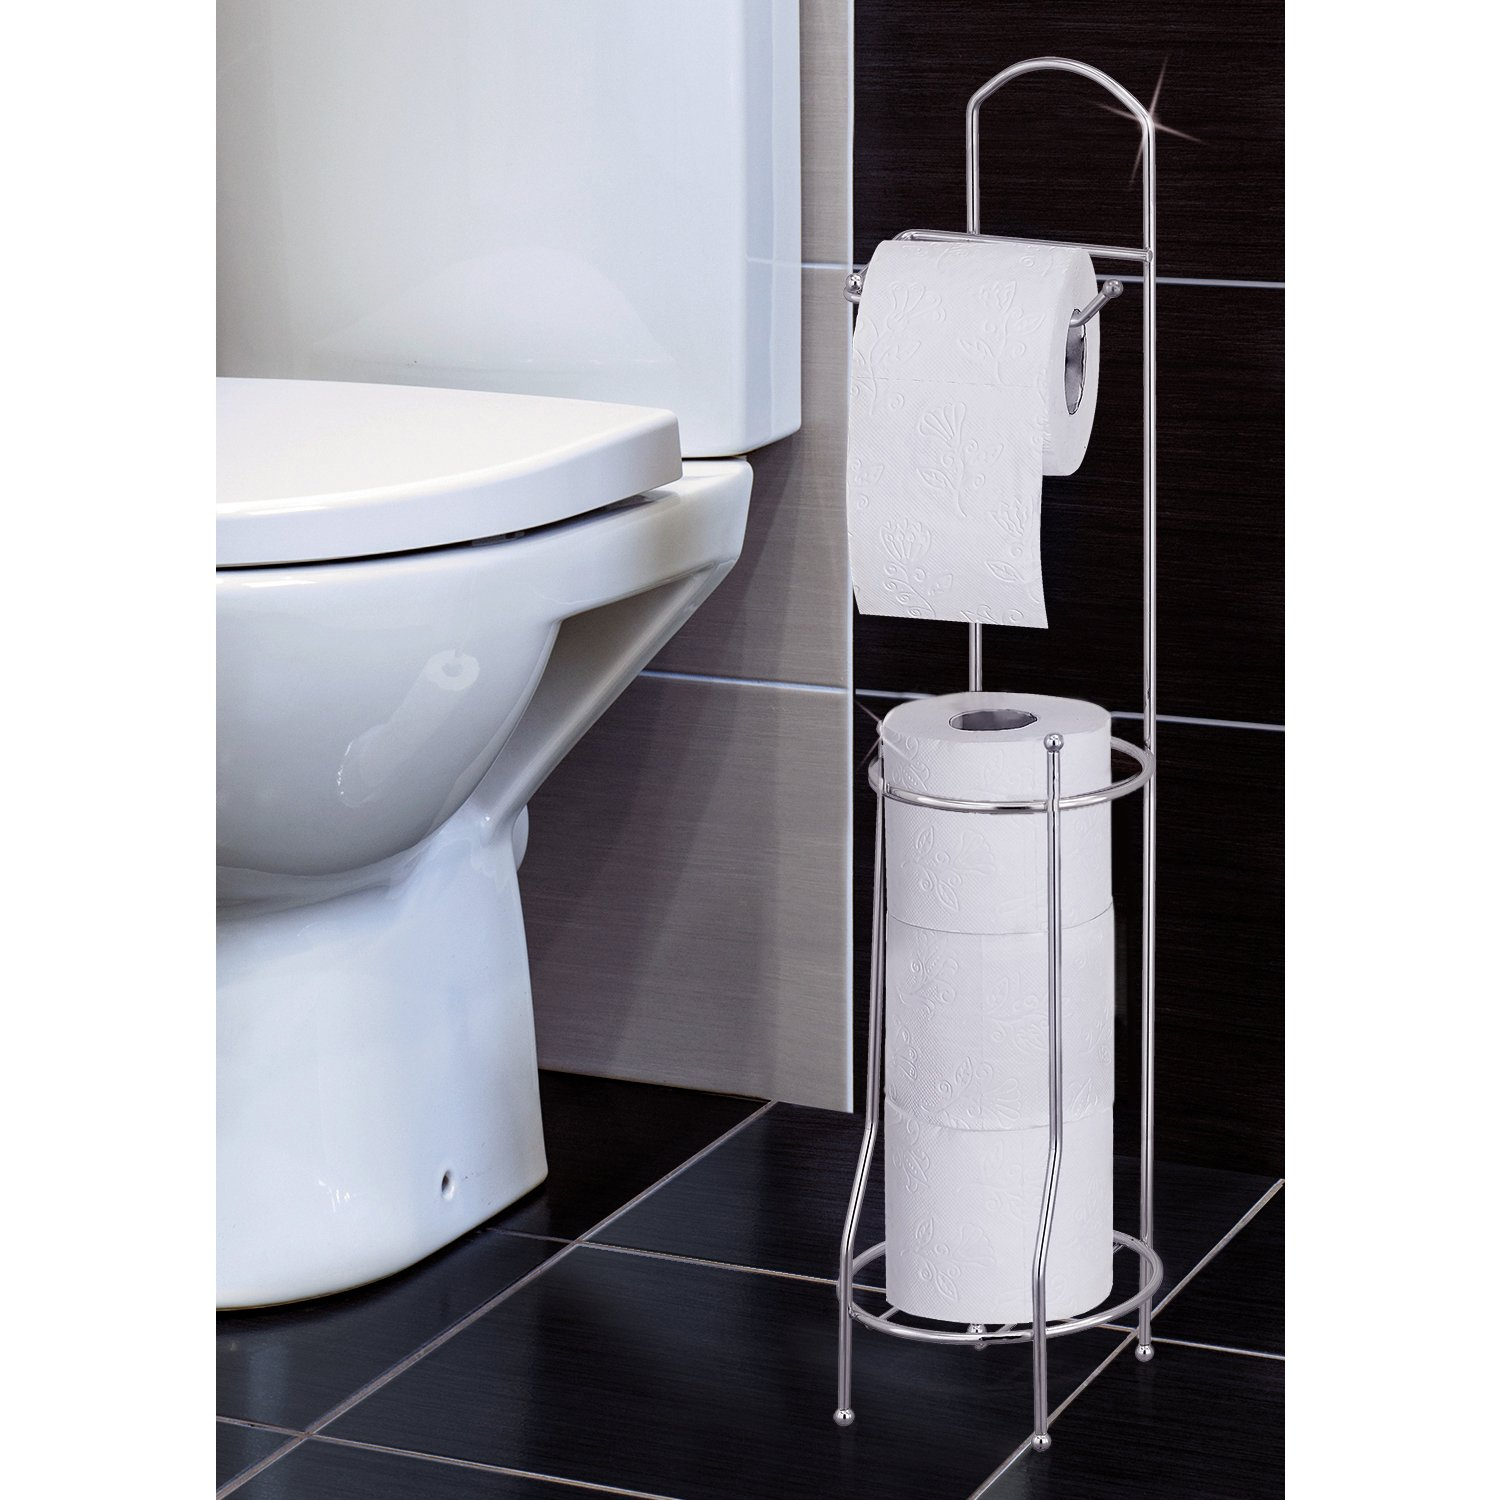 Tatkraft Grace Toilet Roll Holder Stand and Storage Organizer